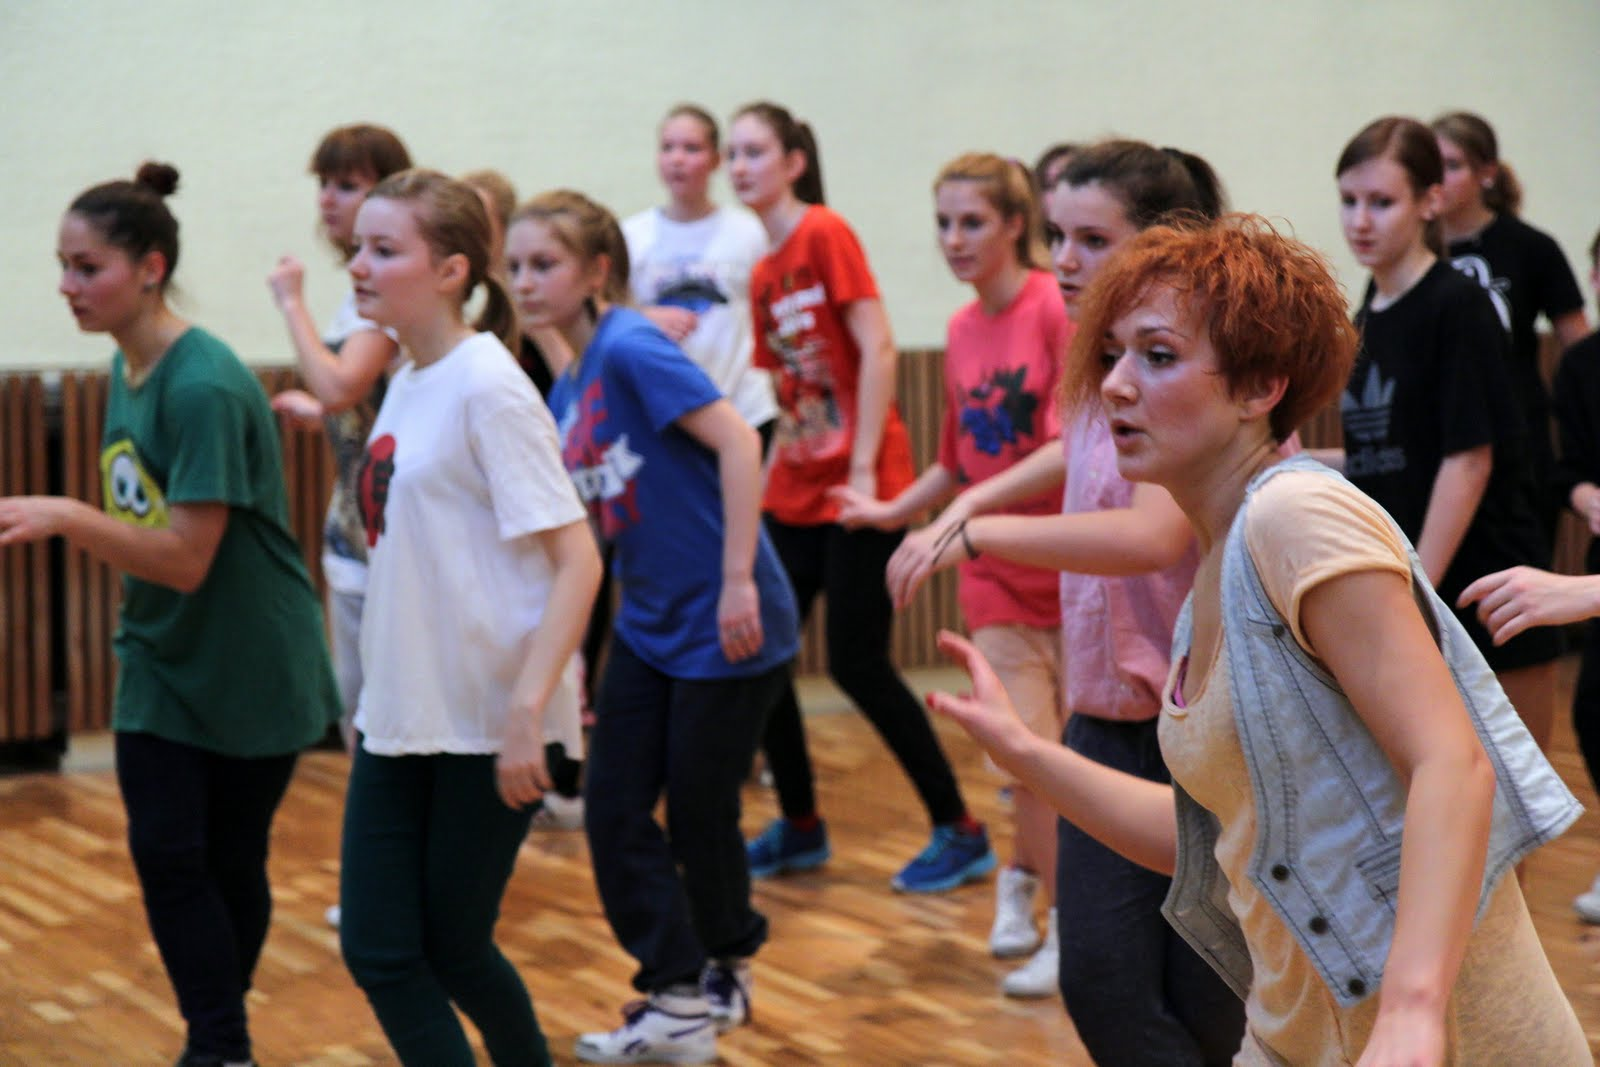 Waacking workshop with Nastya (LV) - IMG_1987.JPG